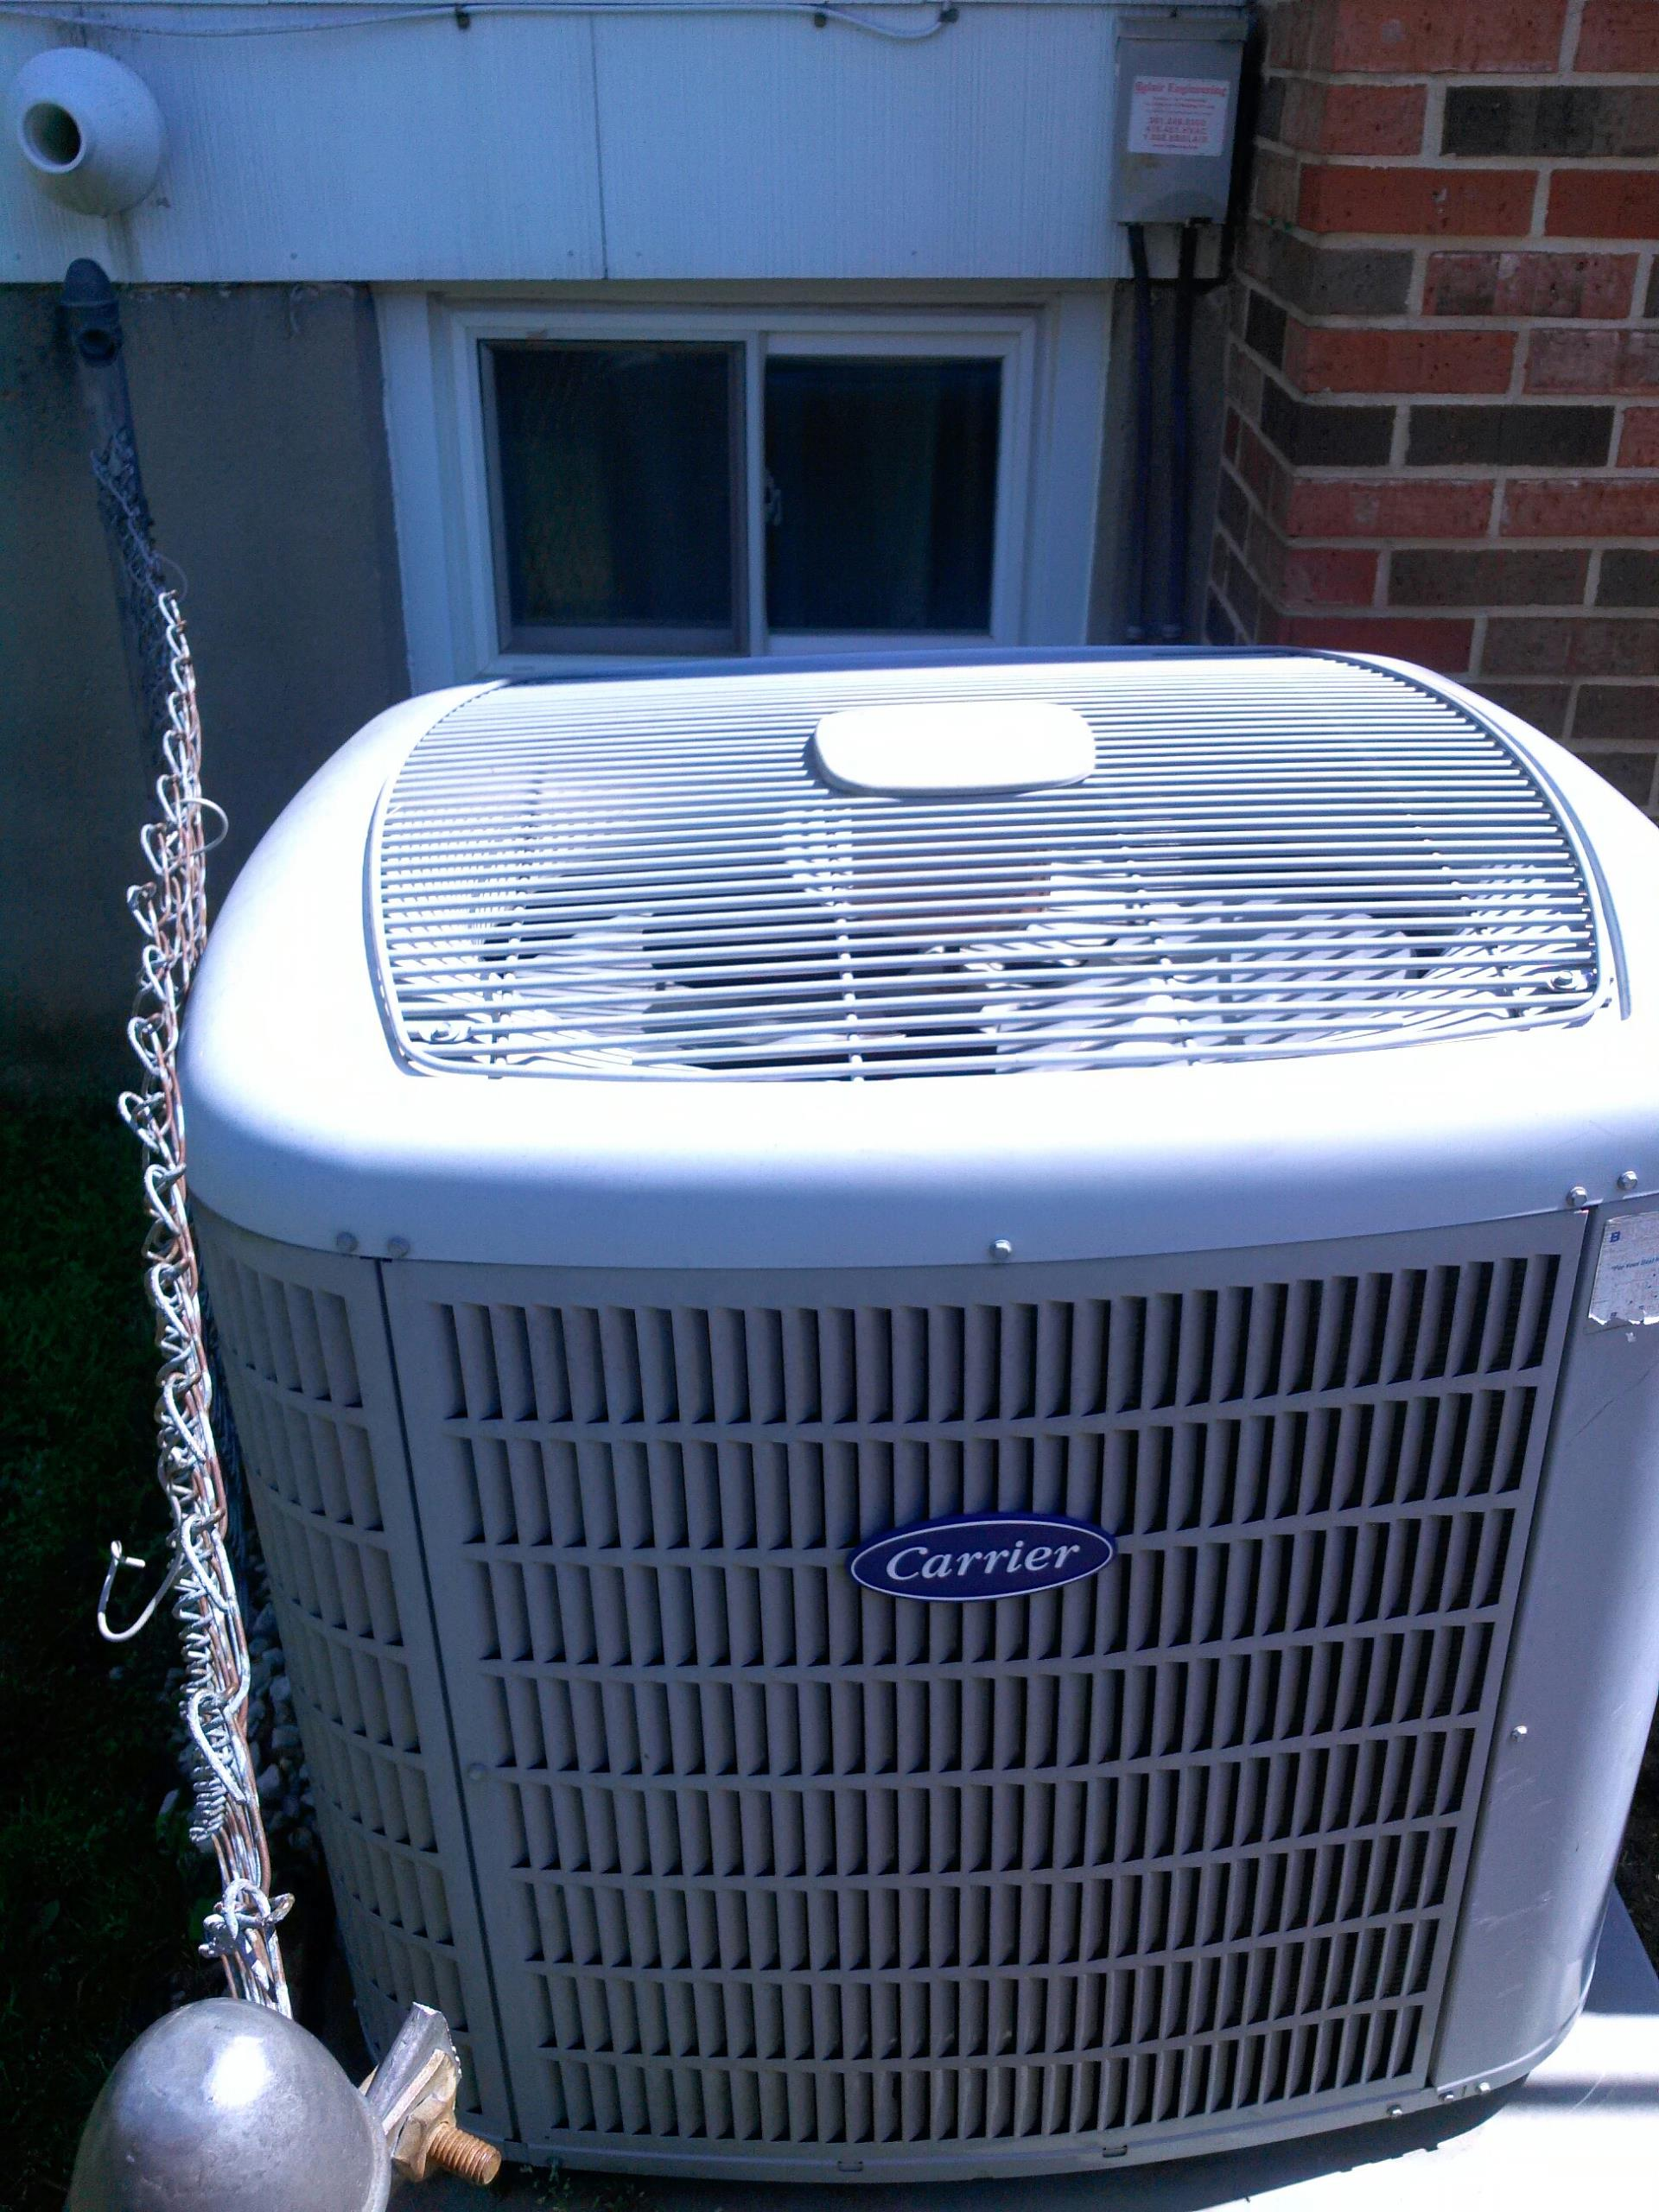 Berwyn Heights, MD - Carrier A/C air conditioning & heating system repair service call Berwyn Heights Maryland